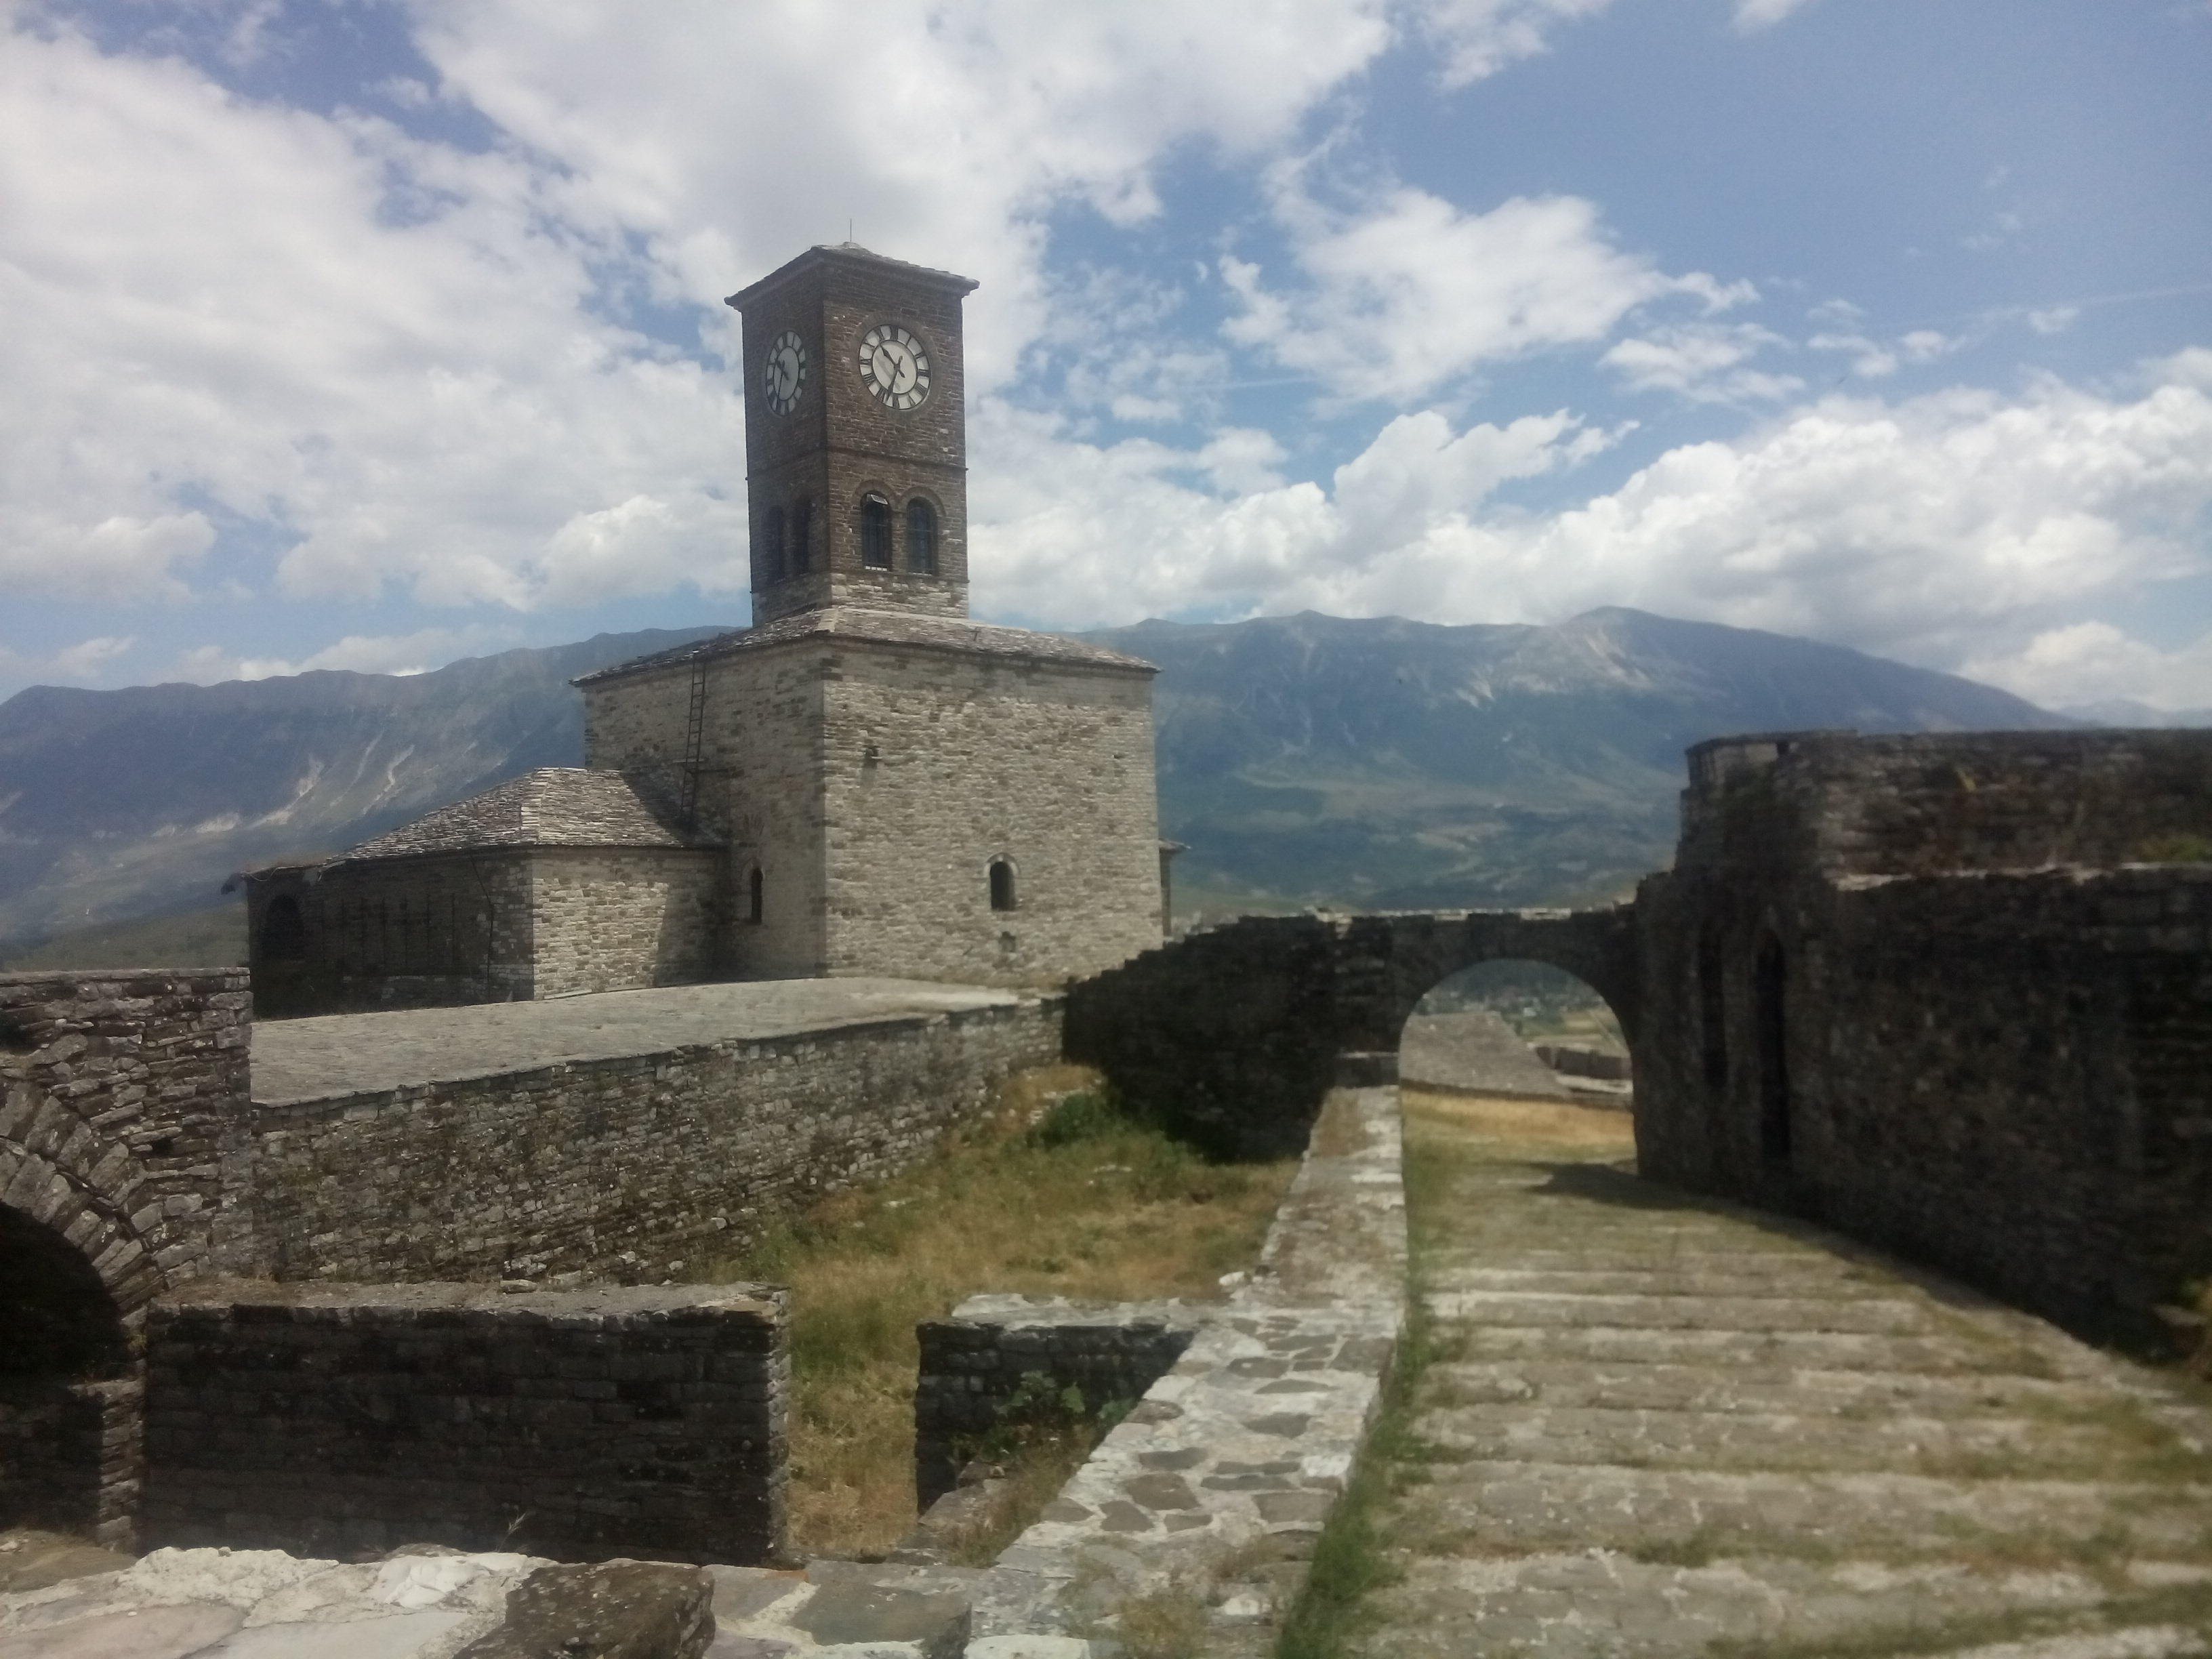 Stone walls and clock tower of Gjirokaster castle with mountains in the background